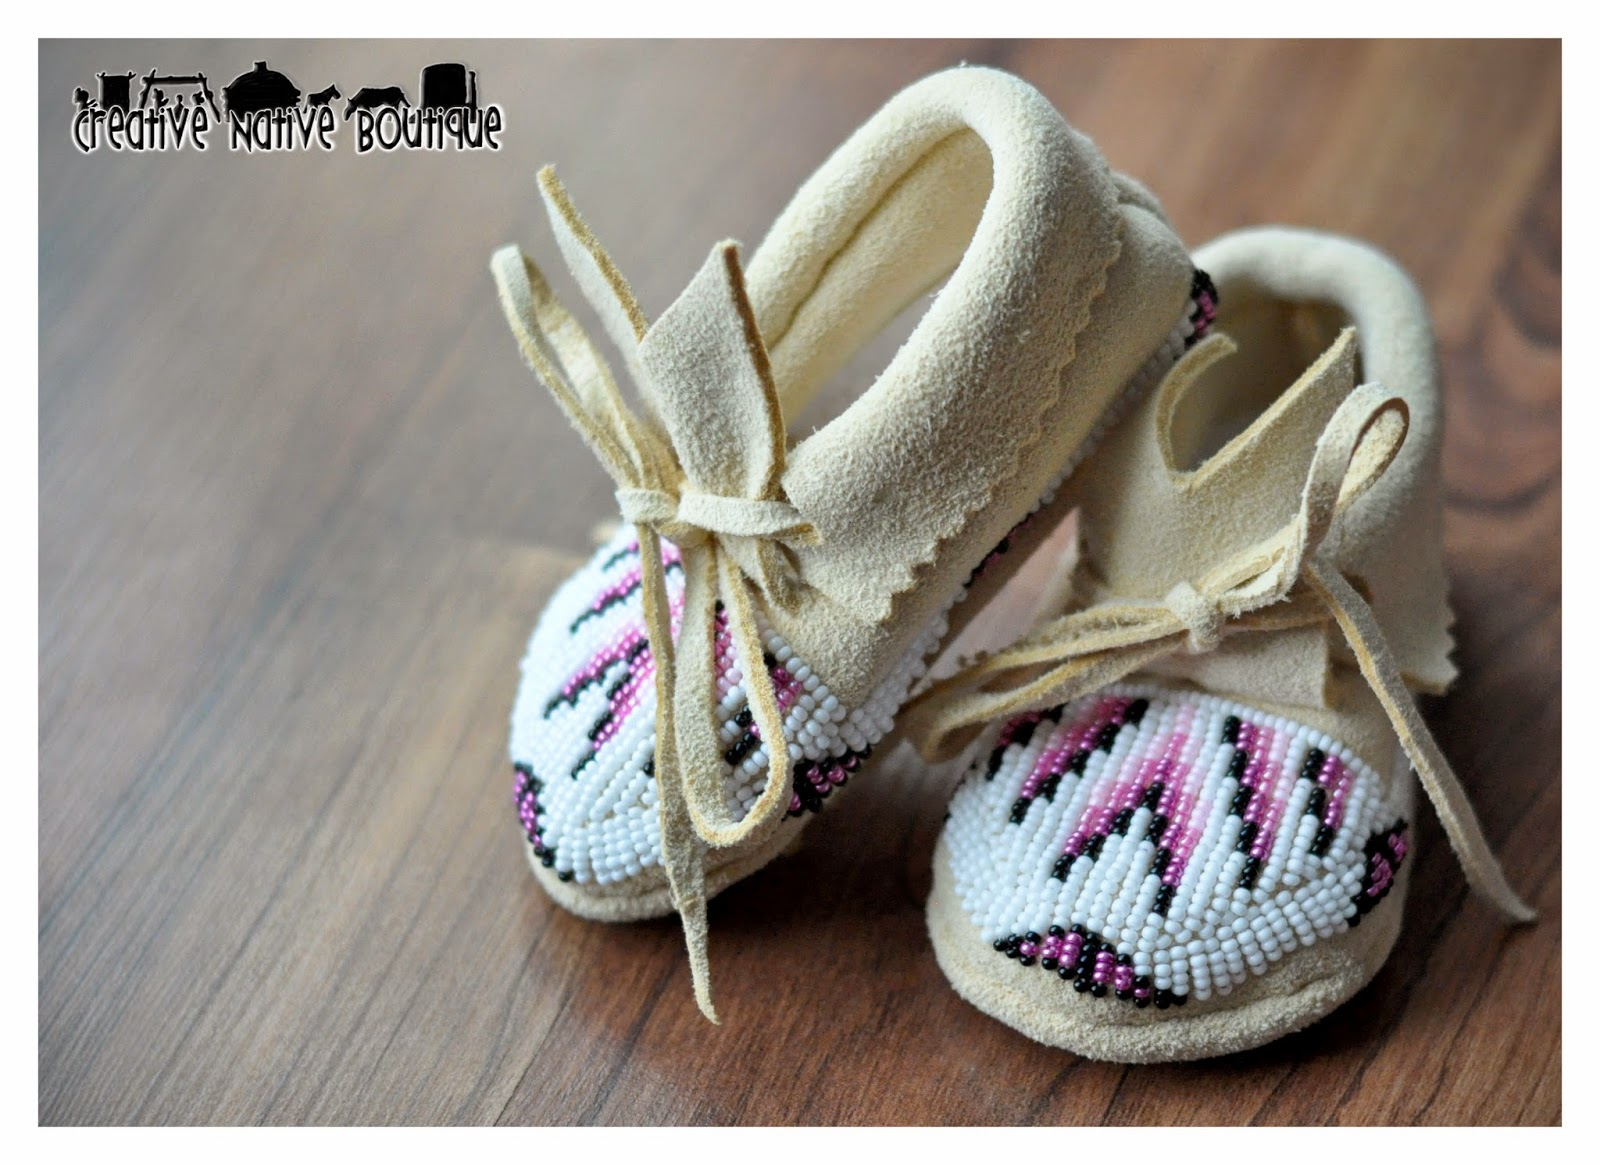 creative boutique shoshone pink beaded baby moccasins